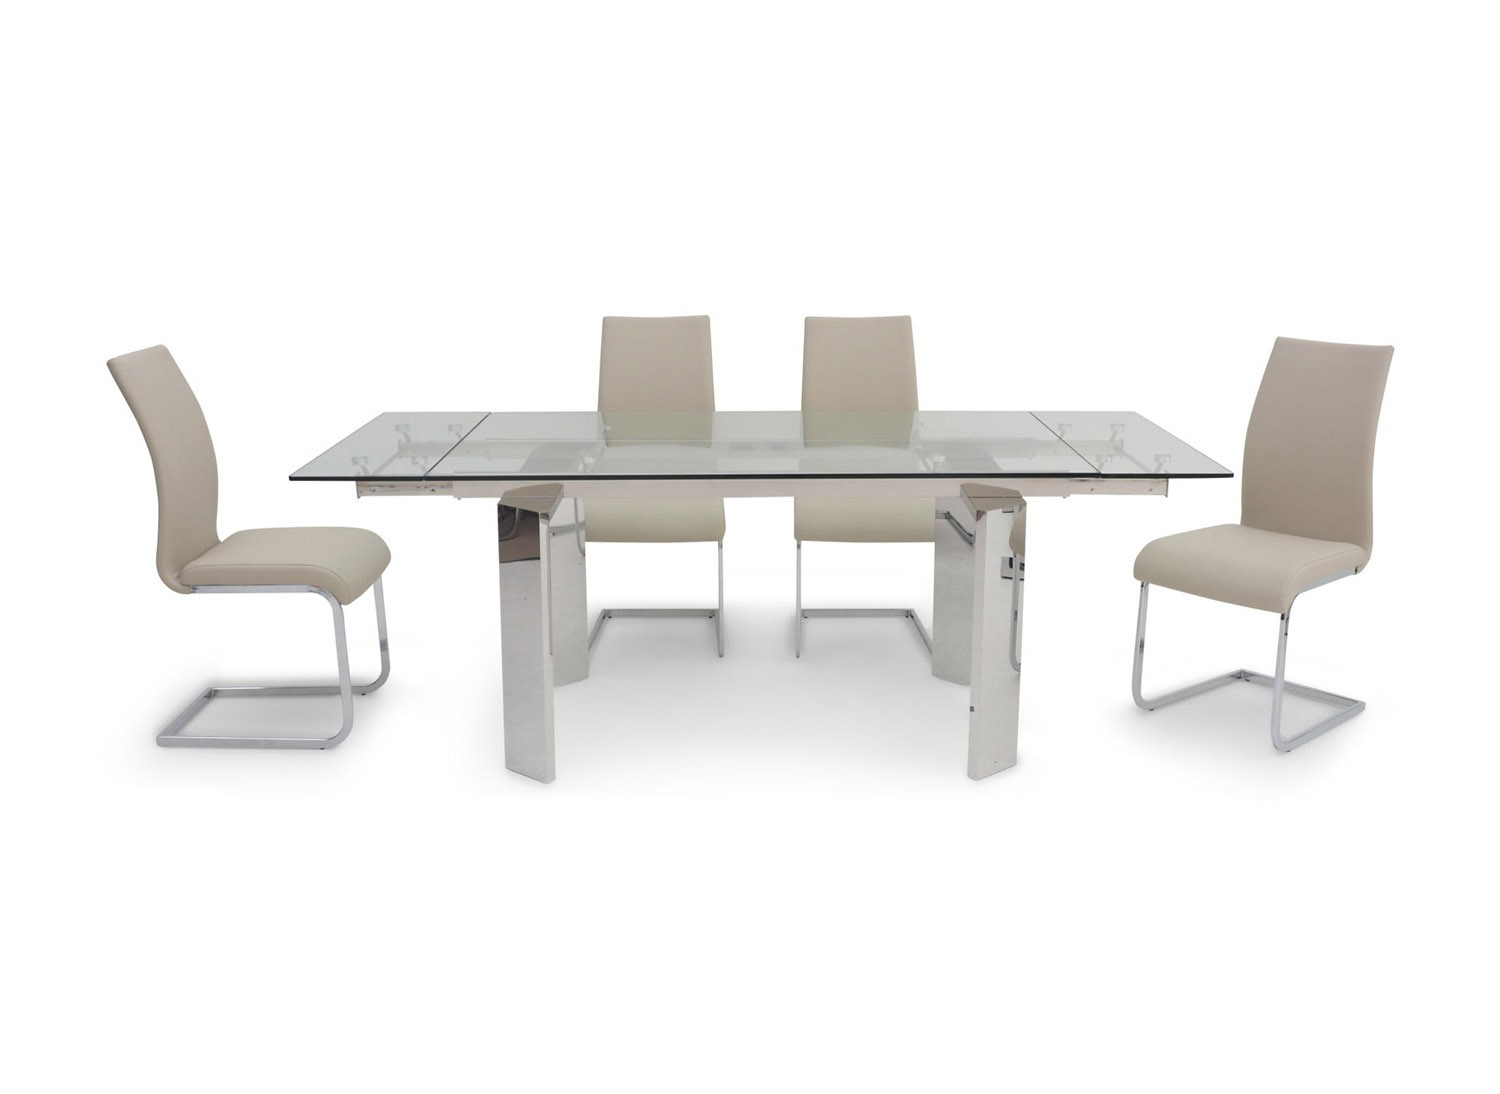 https://www.firstfurniture.co.uk/pub/media/catalog/product/n/a/natalyia_table_paolo_chairs_cream_open_7.jpg